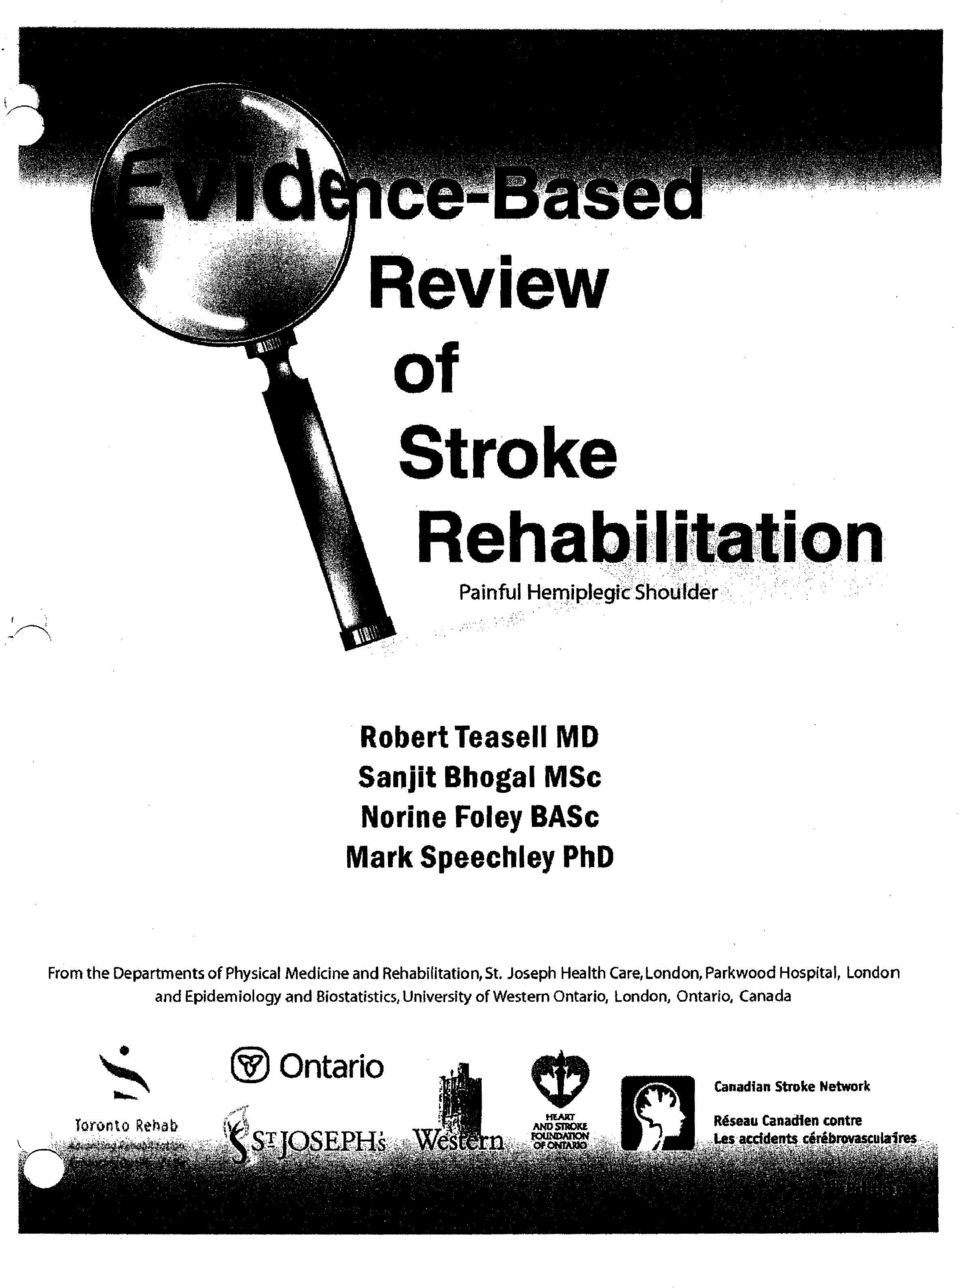 Painful HemipJegrc Shoulder' Robert leasell MD Sanjit Bhogal MSc Norine Foley BASc Mark Speechley PhD From the